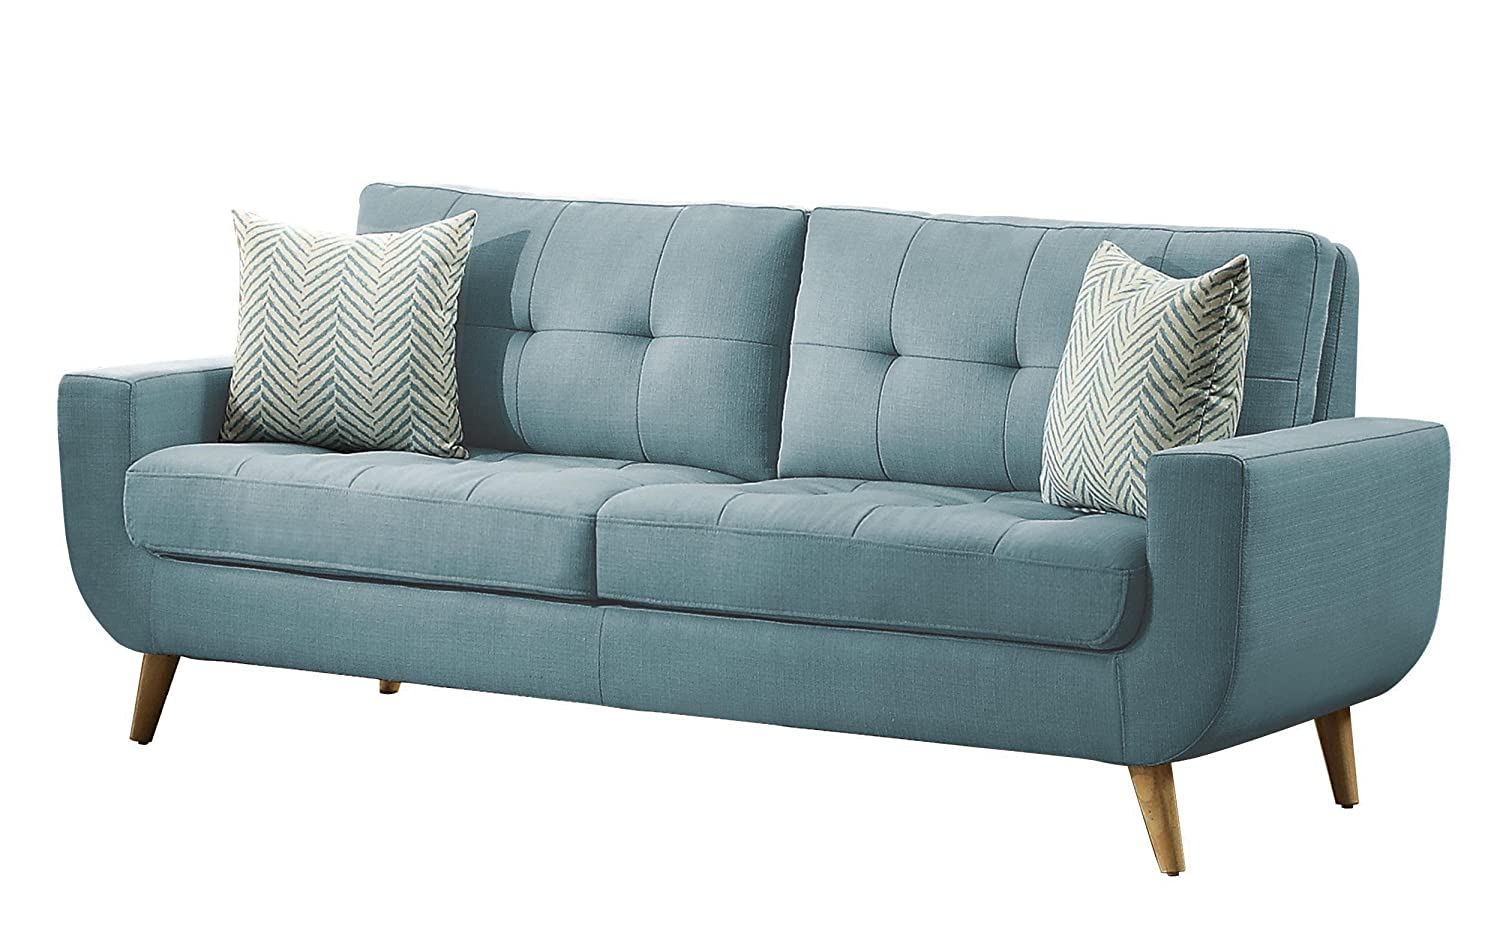 amazoncom homelegance deryn midcentury modern sofa with tufted back and two herringbone throw pillows teal kitchen u0026 dining